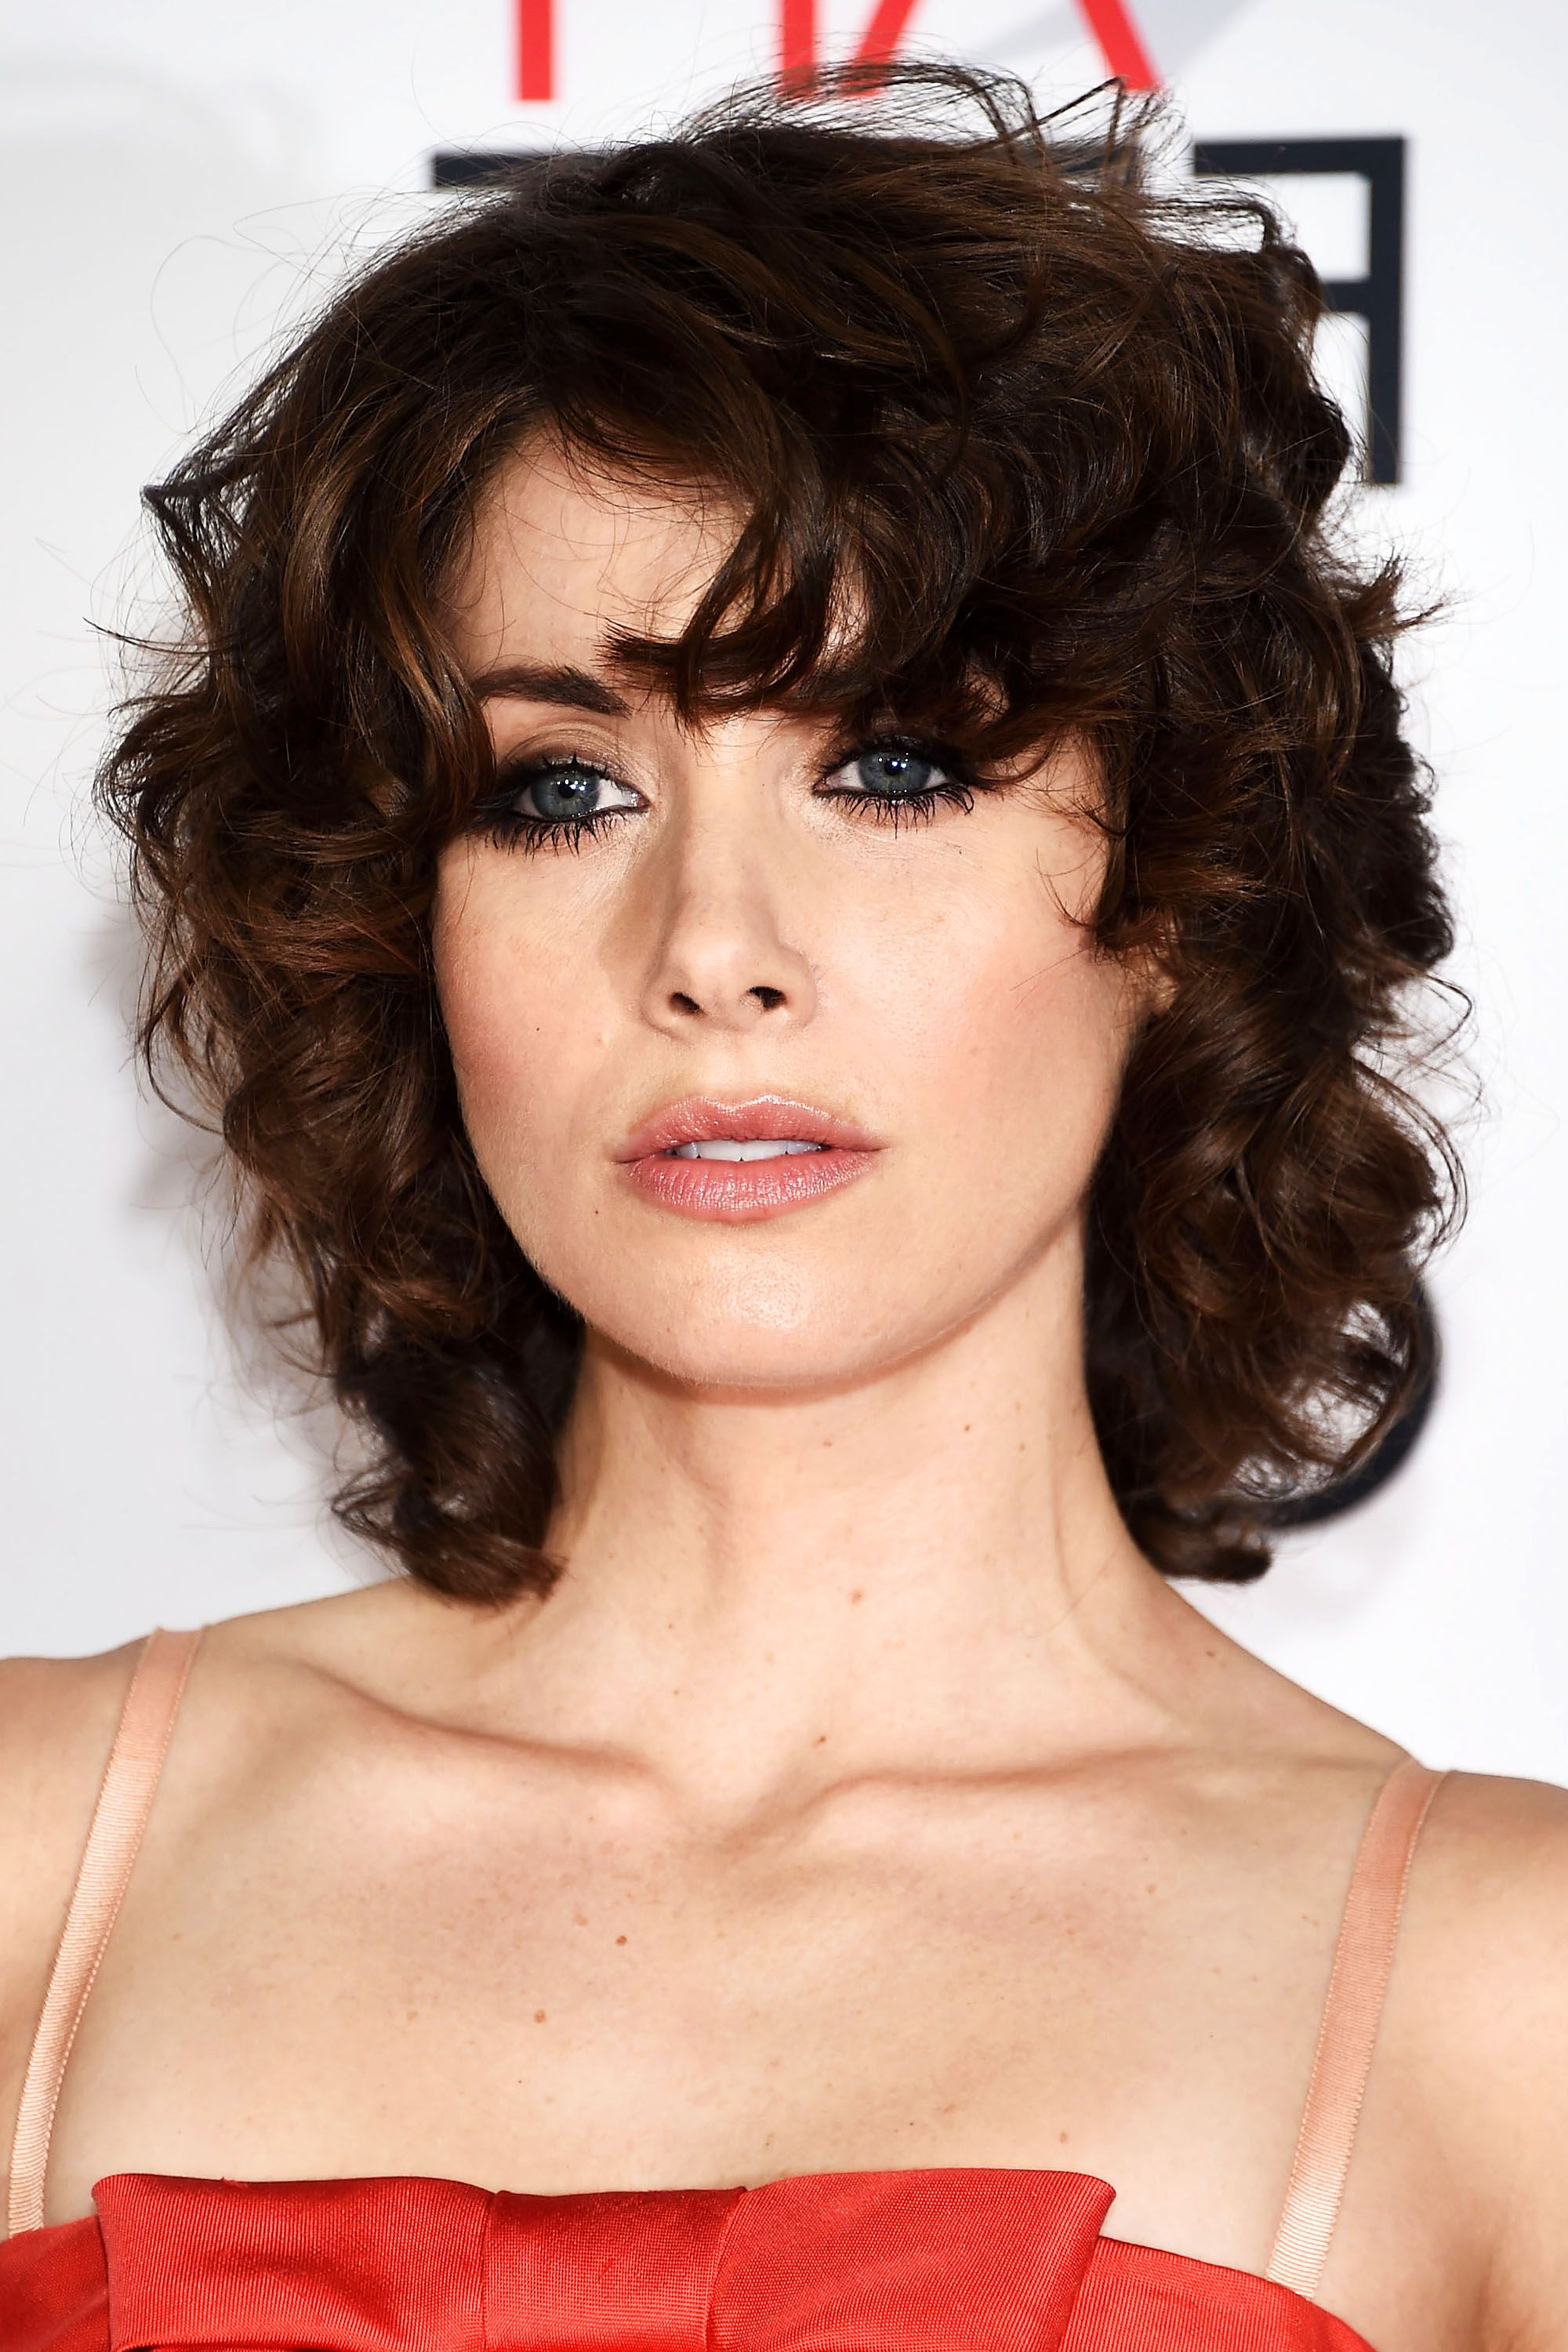 112 Hairstyles With Bangs You'll Want To Copy – Celebrity Haircuts Throughout Side Swept Short Hairstyles (View 15 of 25)